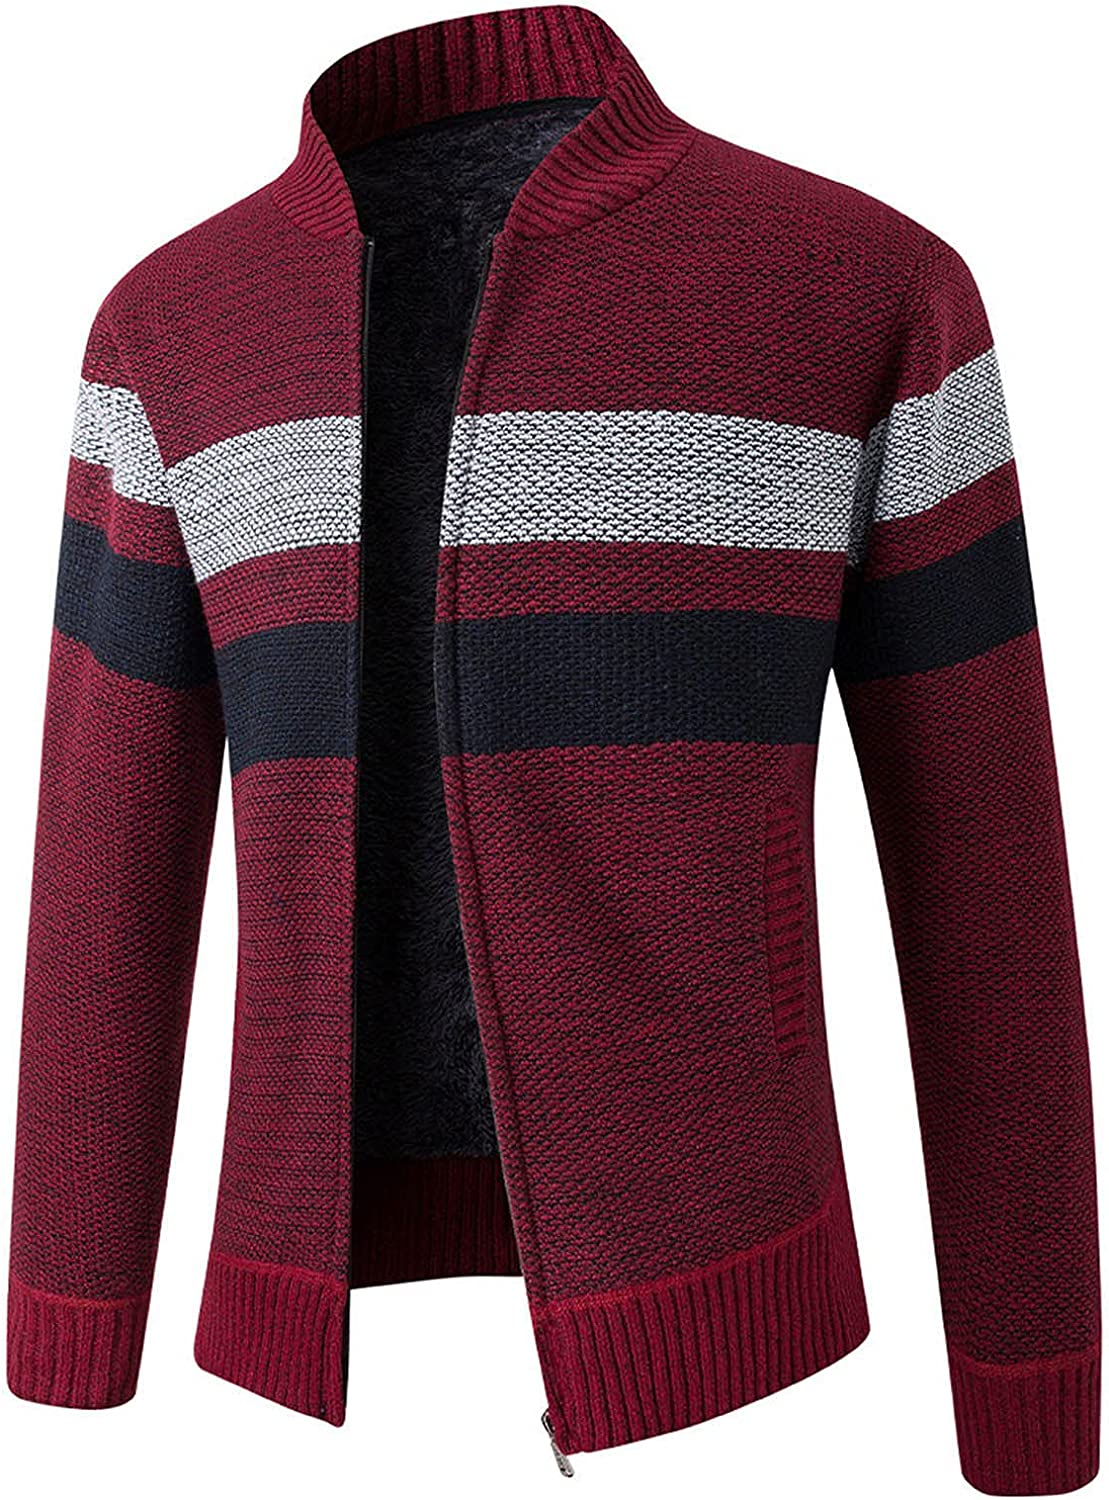 Men's Classic Collared Full Zip Jackets Color Block Stripe Cable Knitted Cardigan Sweater Coat Outerwear